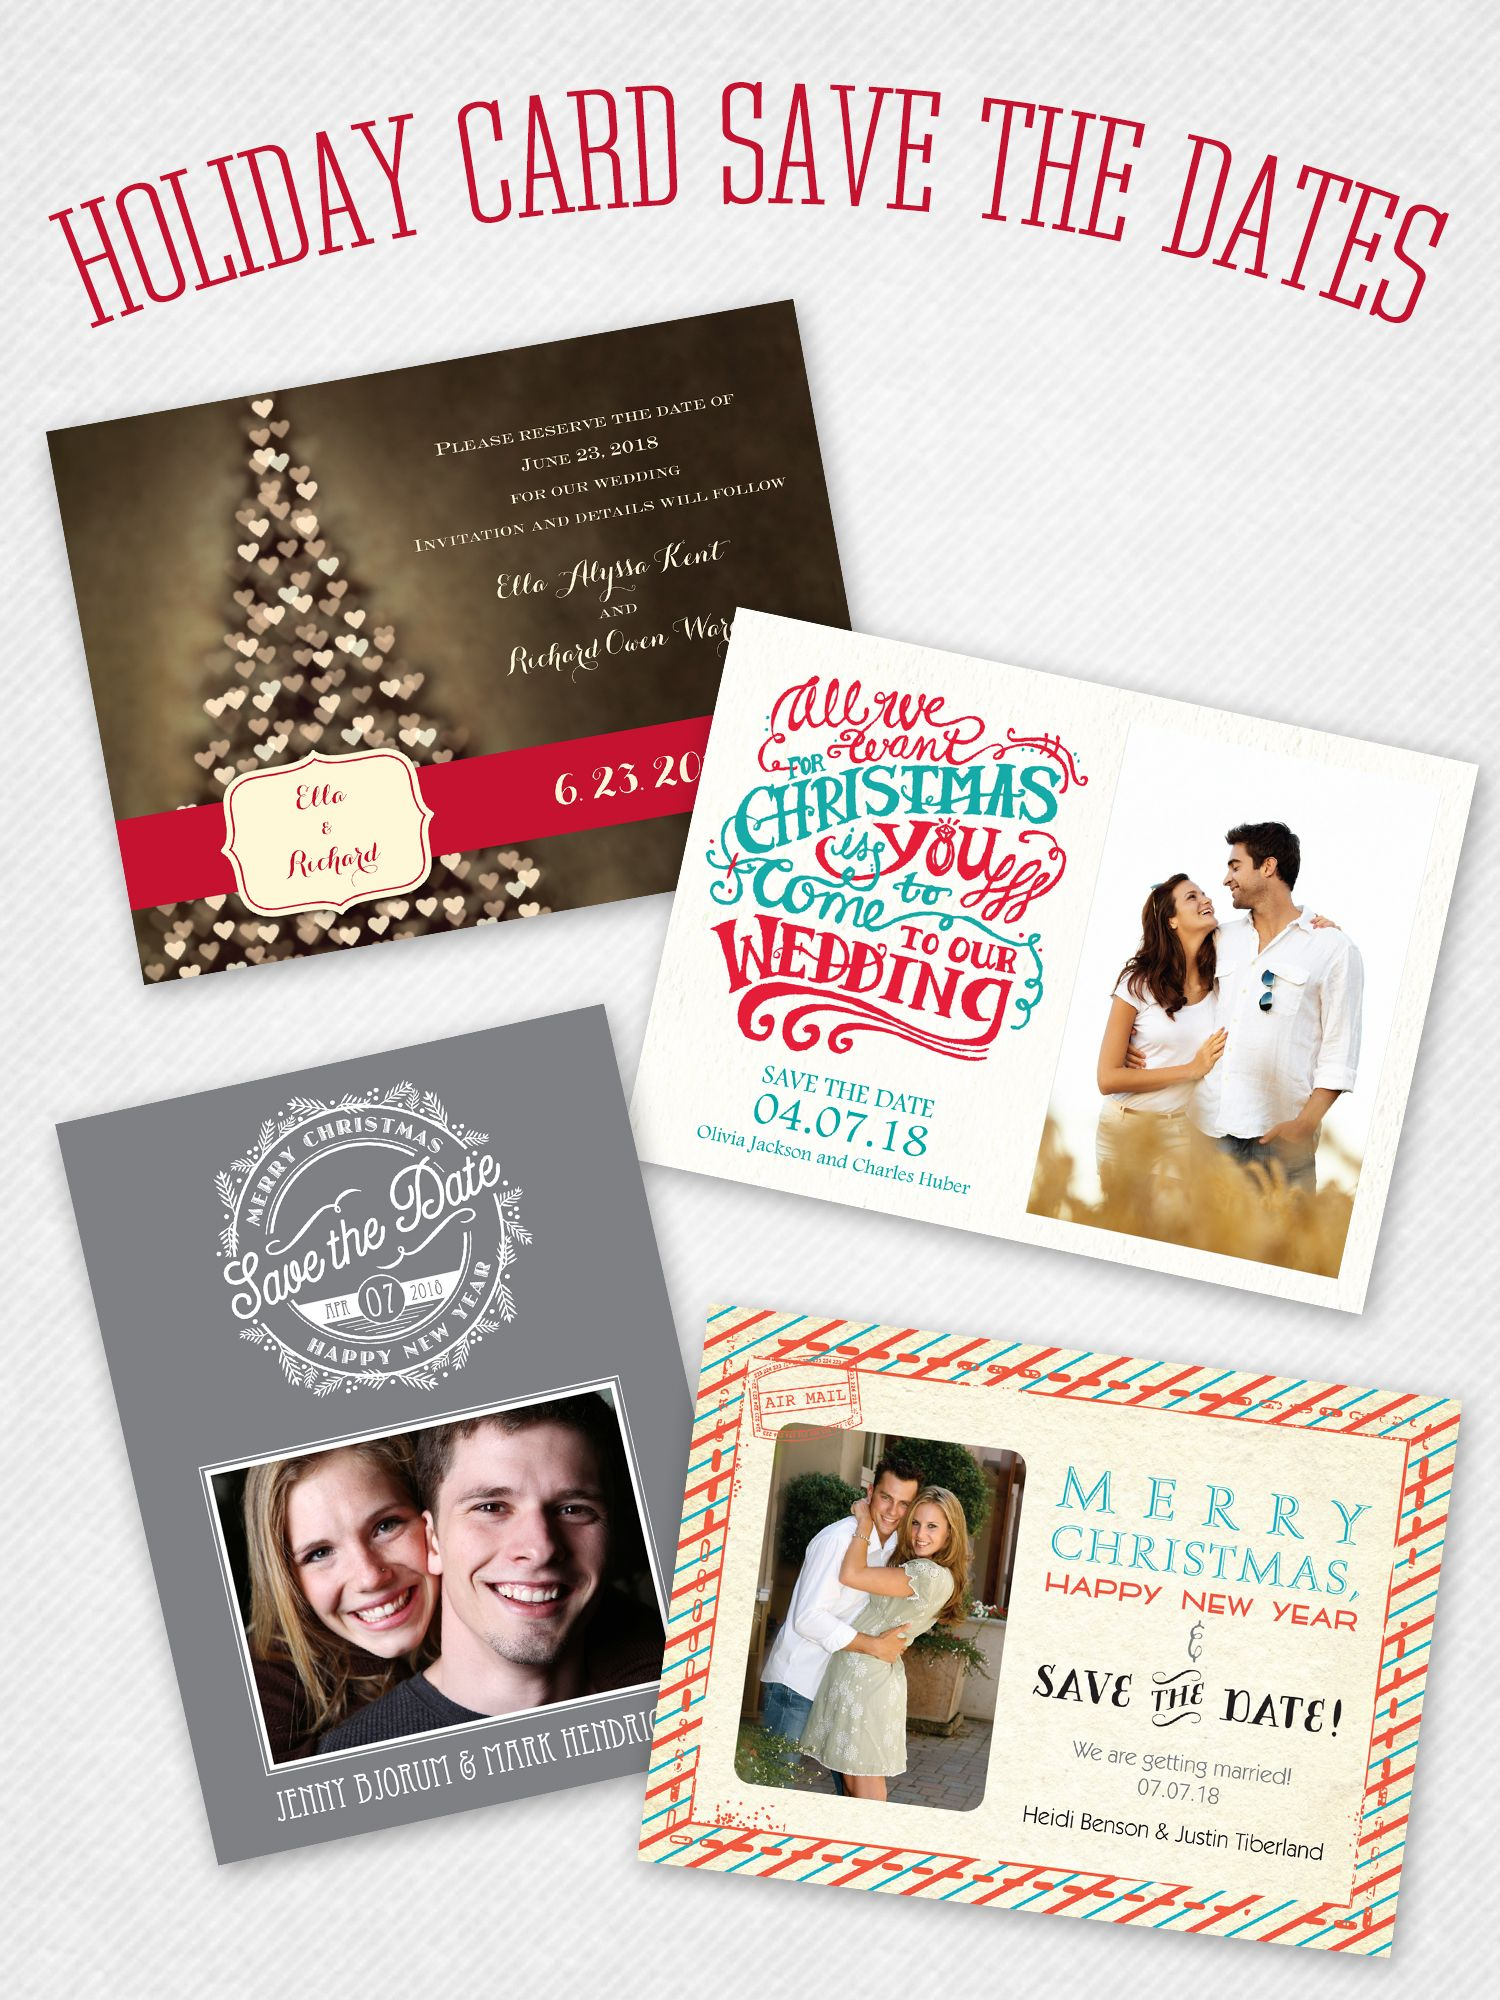 tie the knot wedding invitations etsy%0A save the date   holiday card in one cute little package